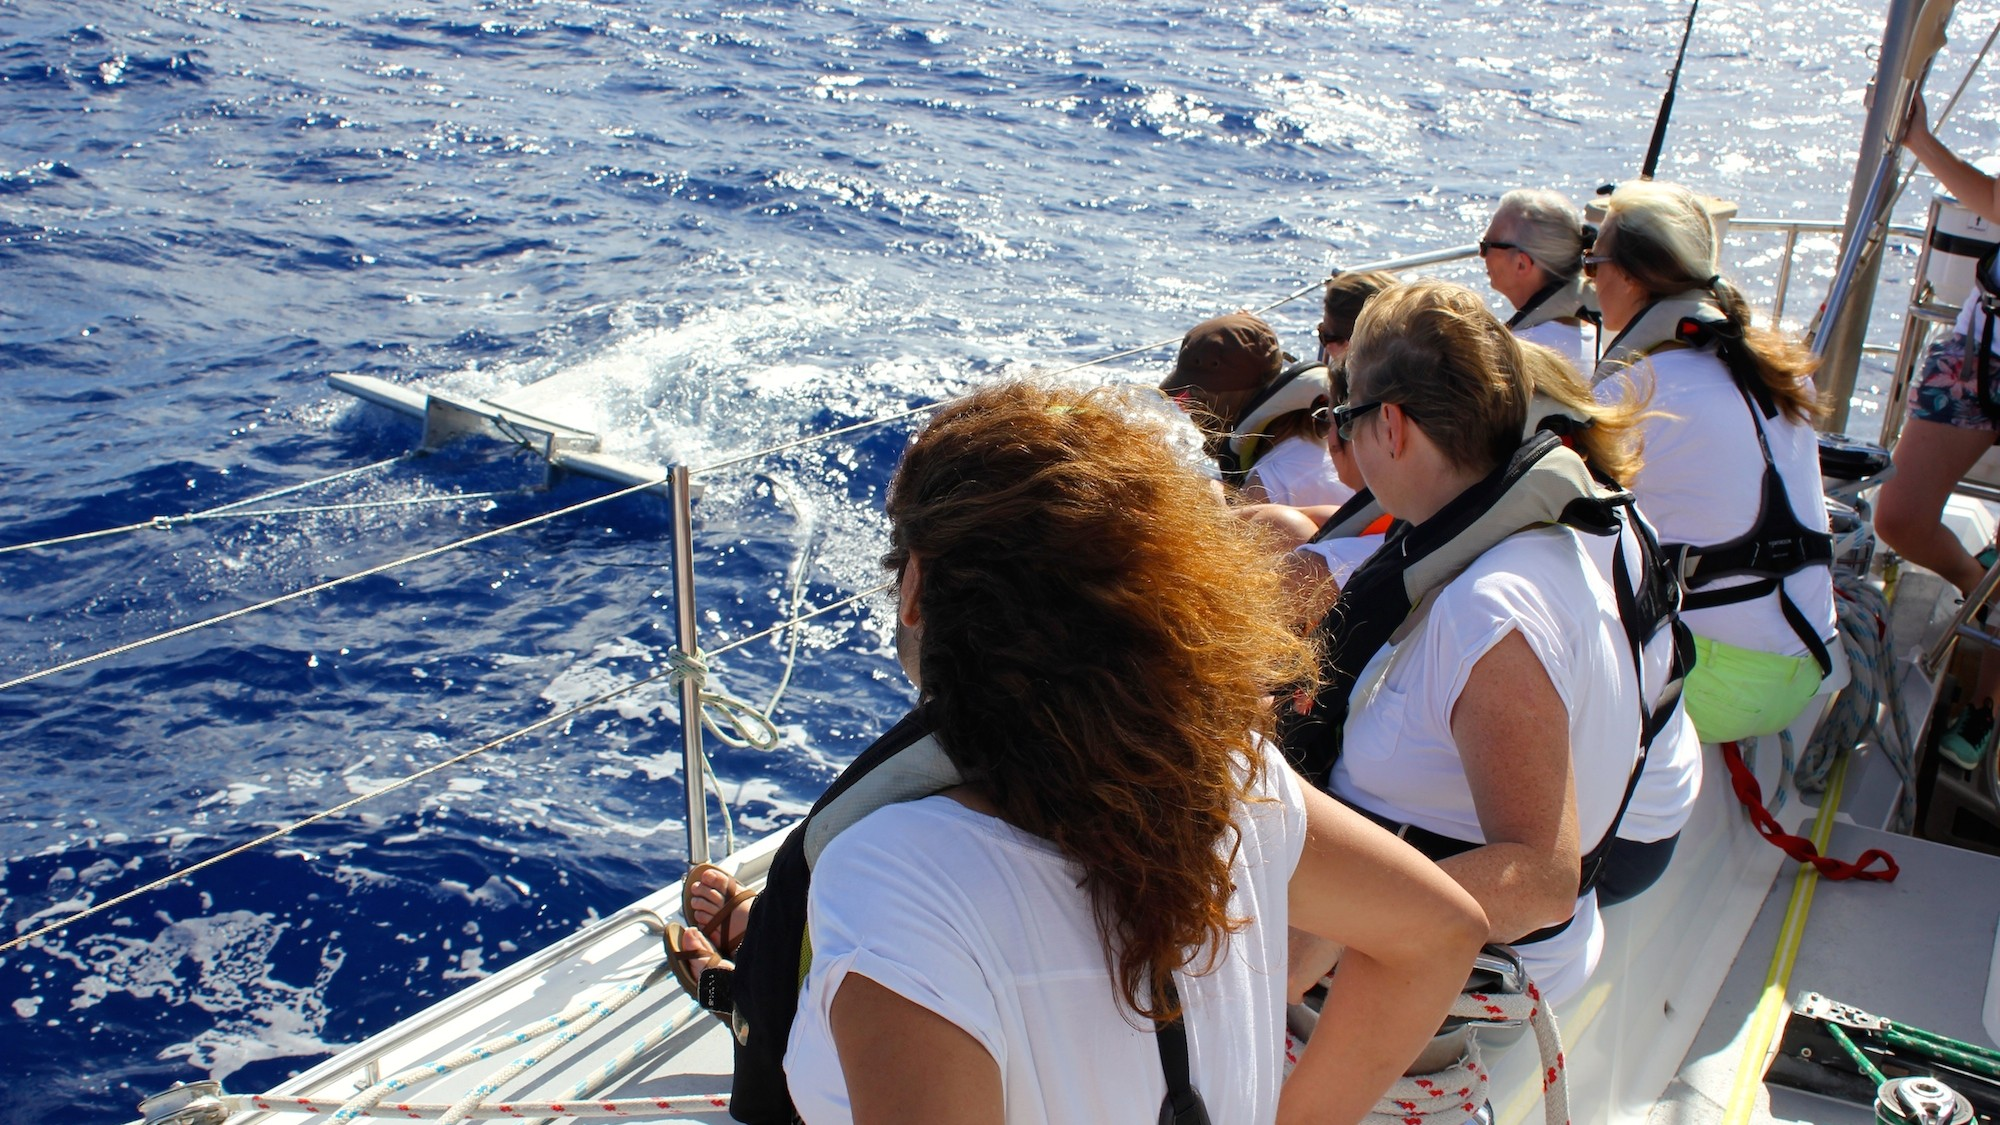 14 Women Sailed to Sea to Investigate Plastic's Toxic Impact on Hormones